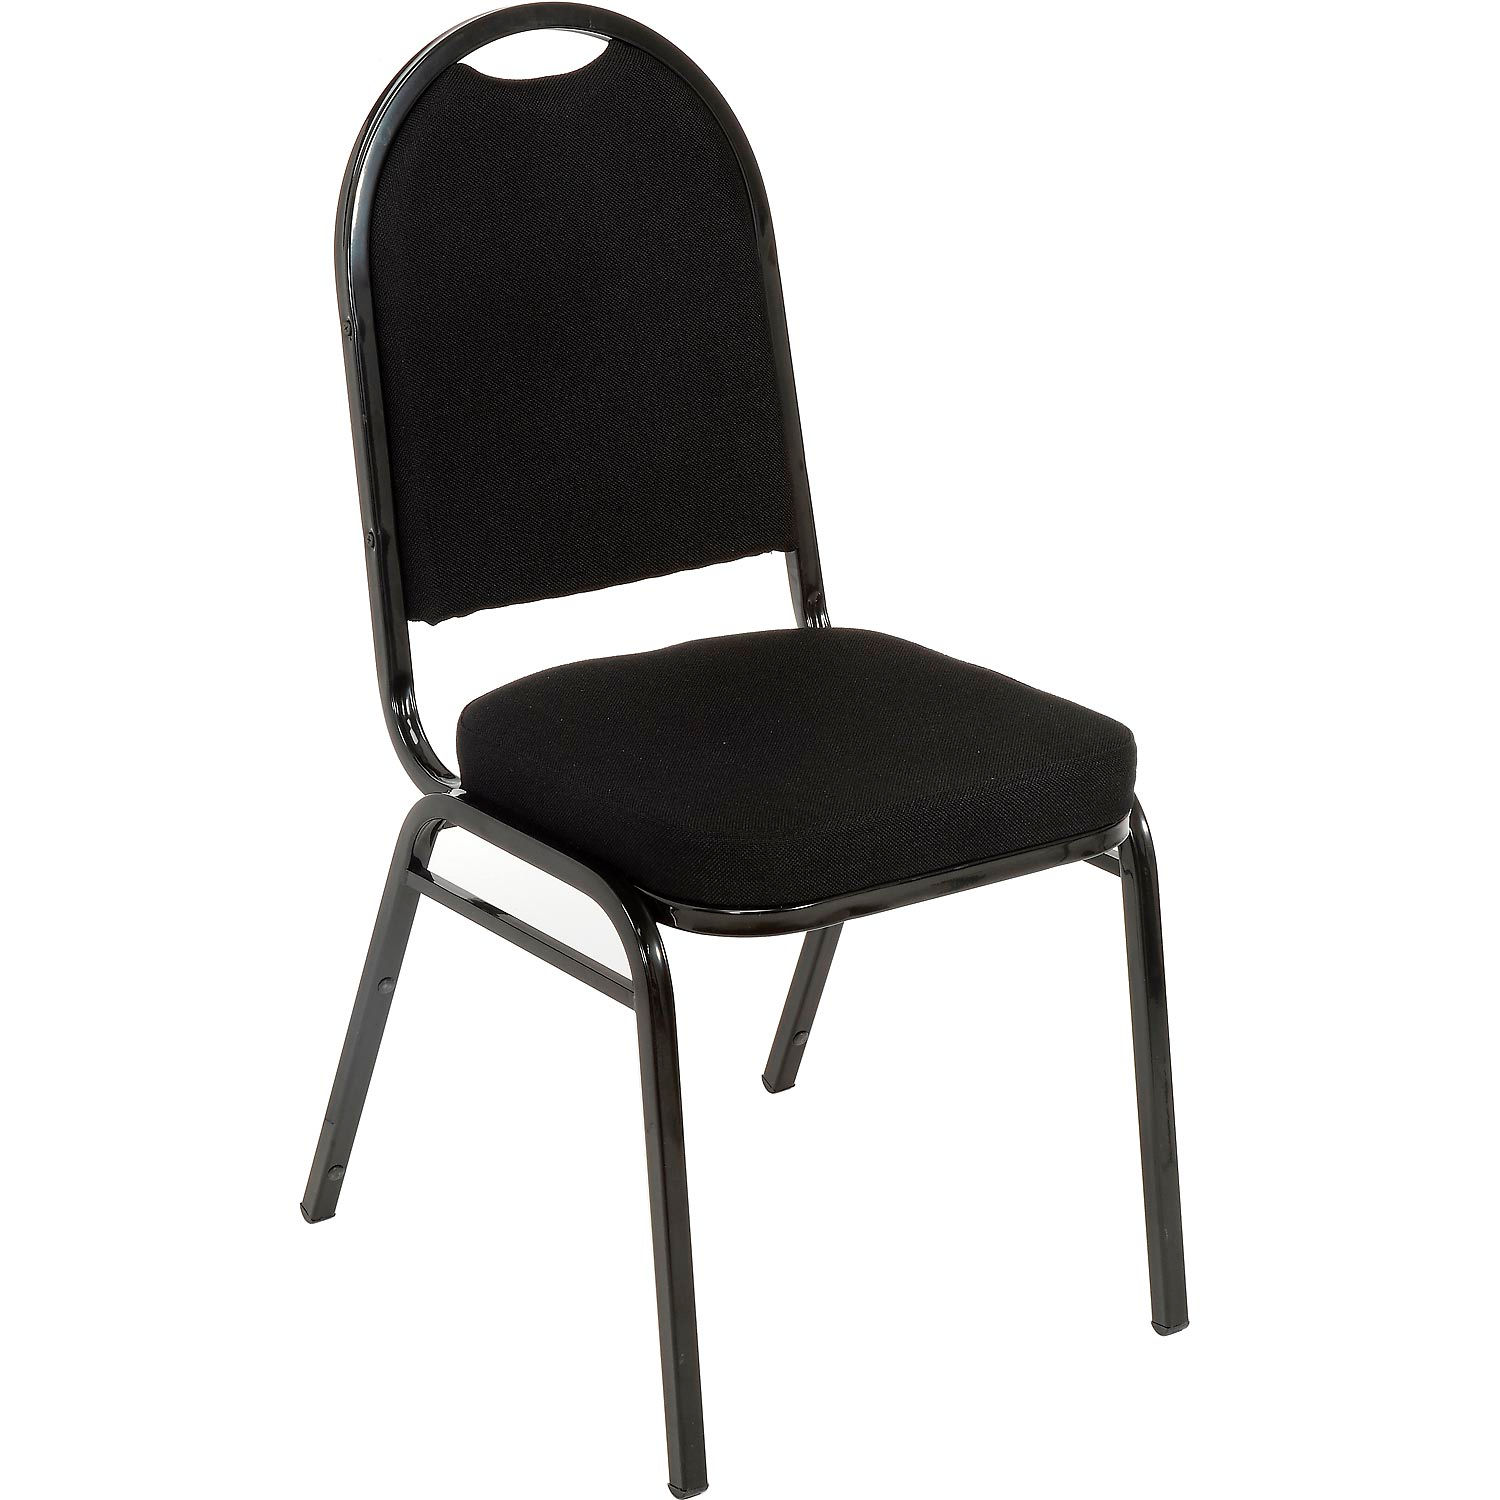 Chairs Stackable Kfi Heavy Duty Banquet Stacking Chair